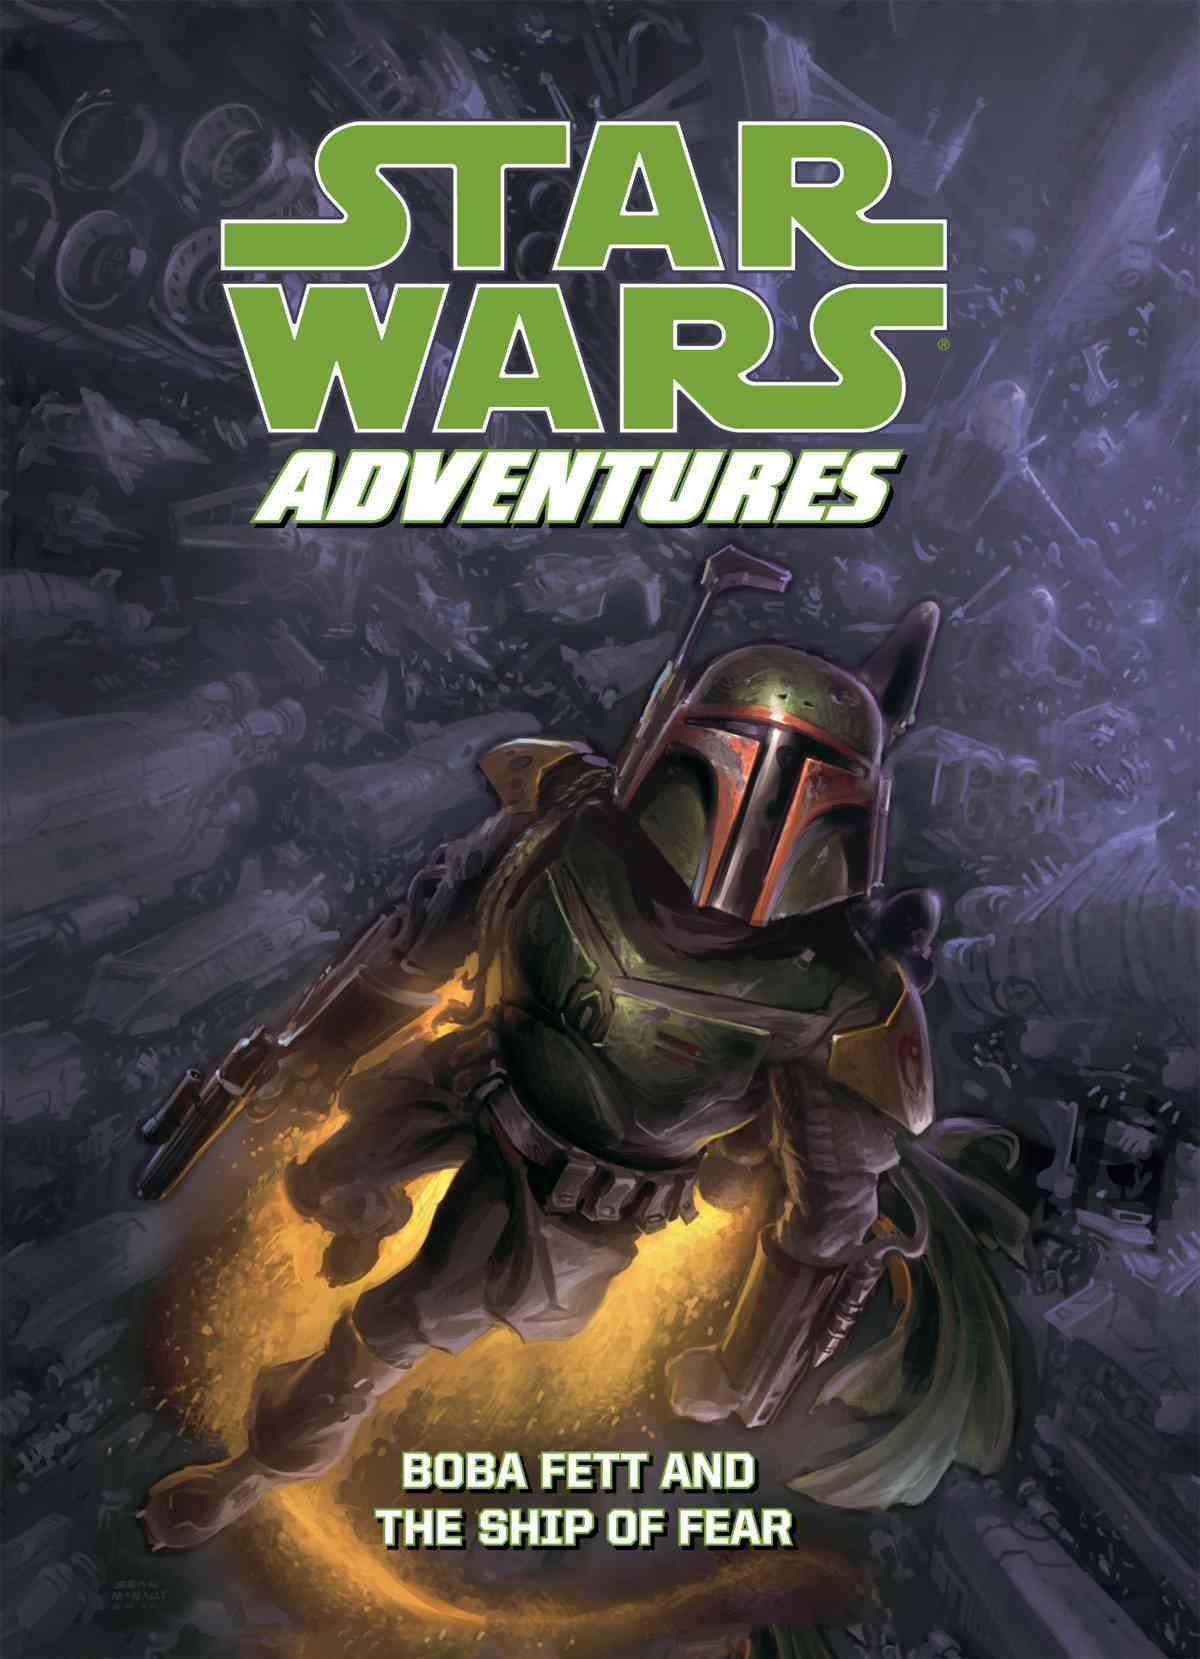 Star Wars Adventures: Boba Fett and the Ship of Fear: Boba Fett and the Ship of Fear (Hardcover)